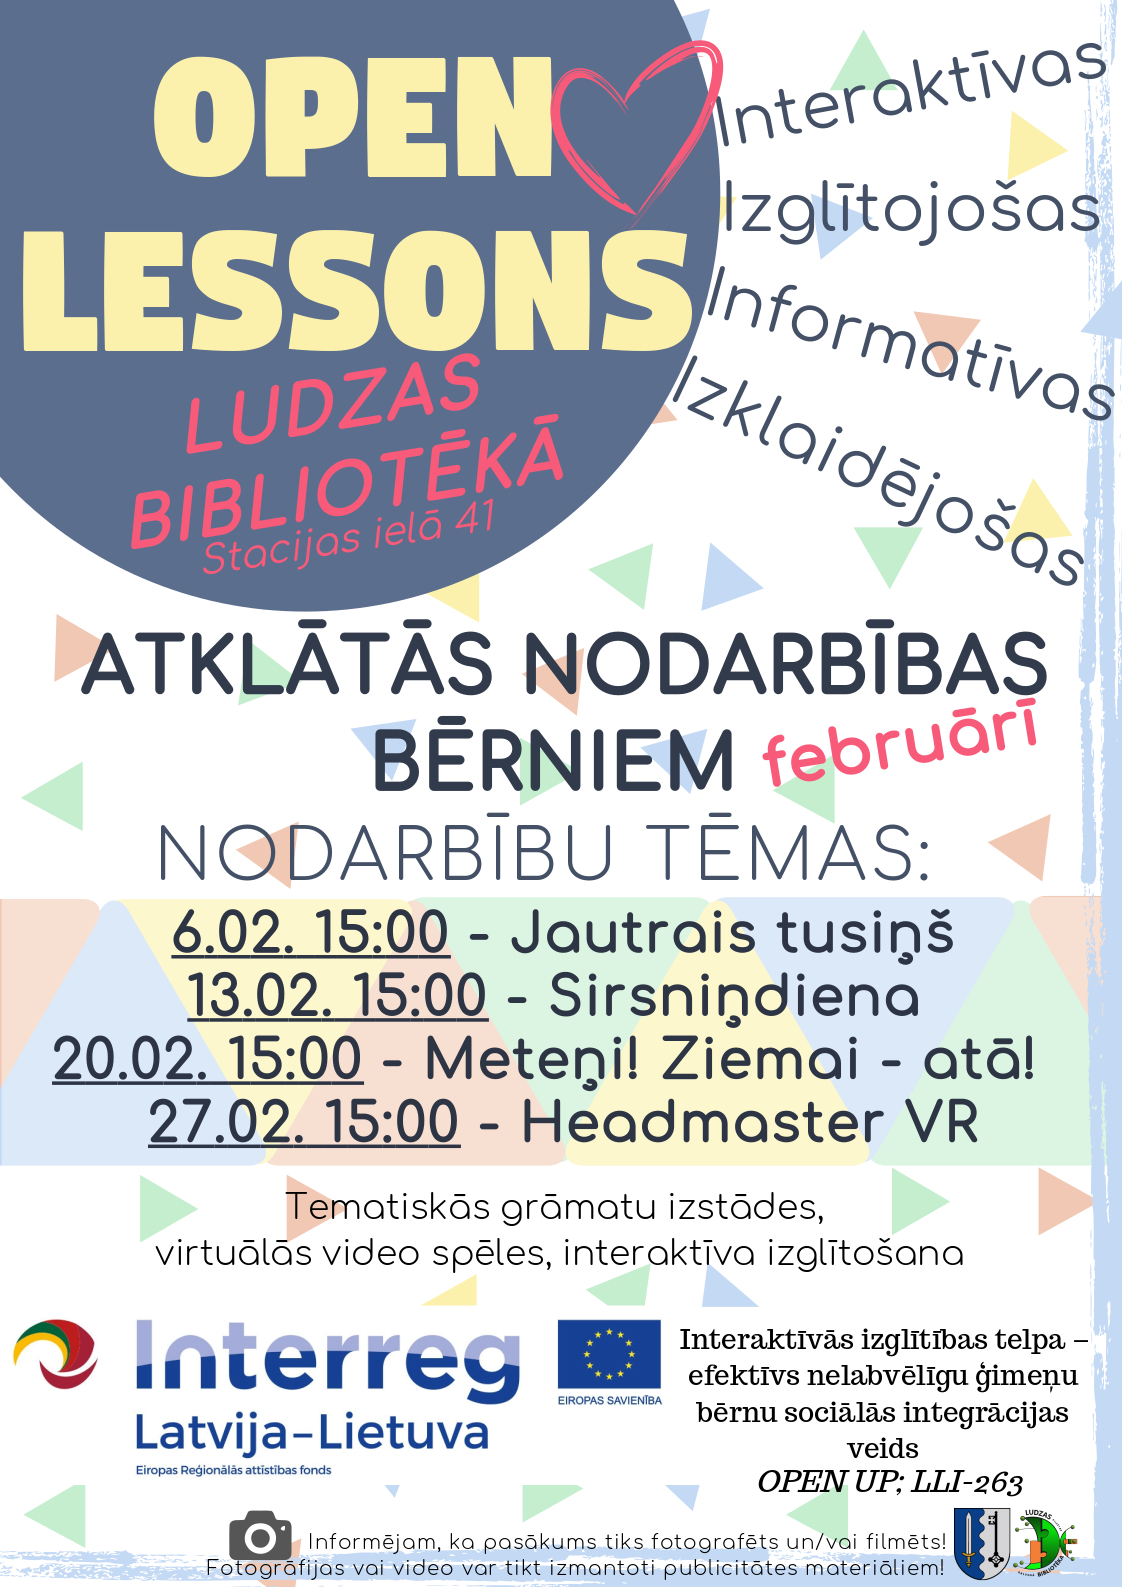 Open lessons february